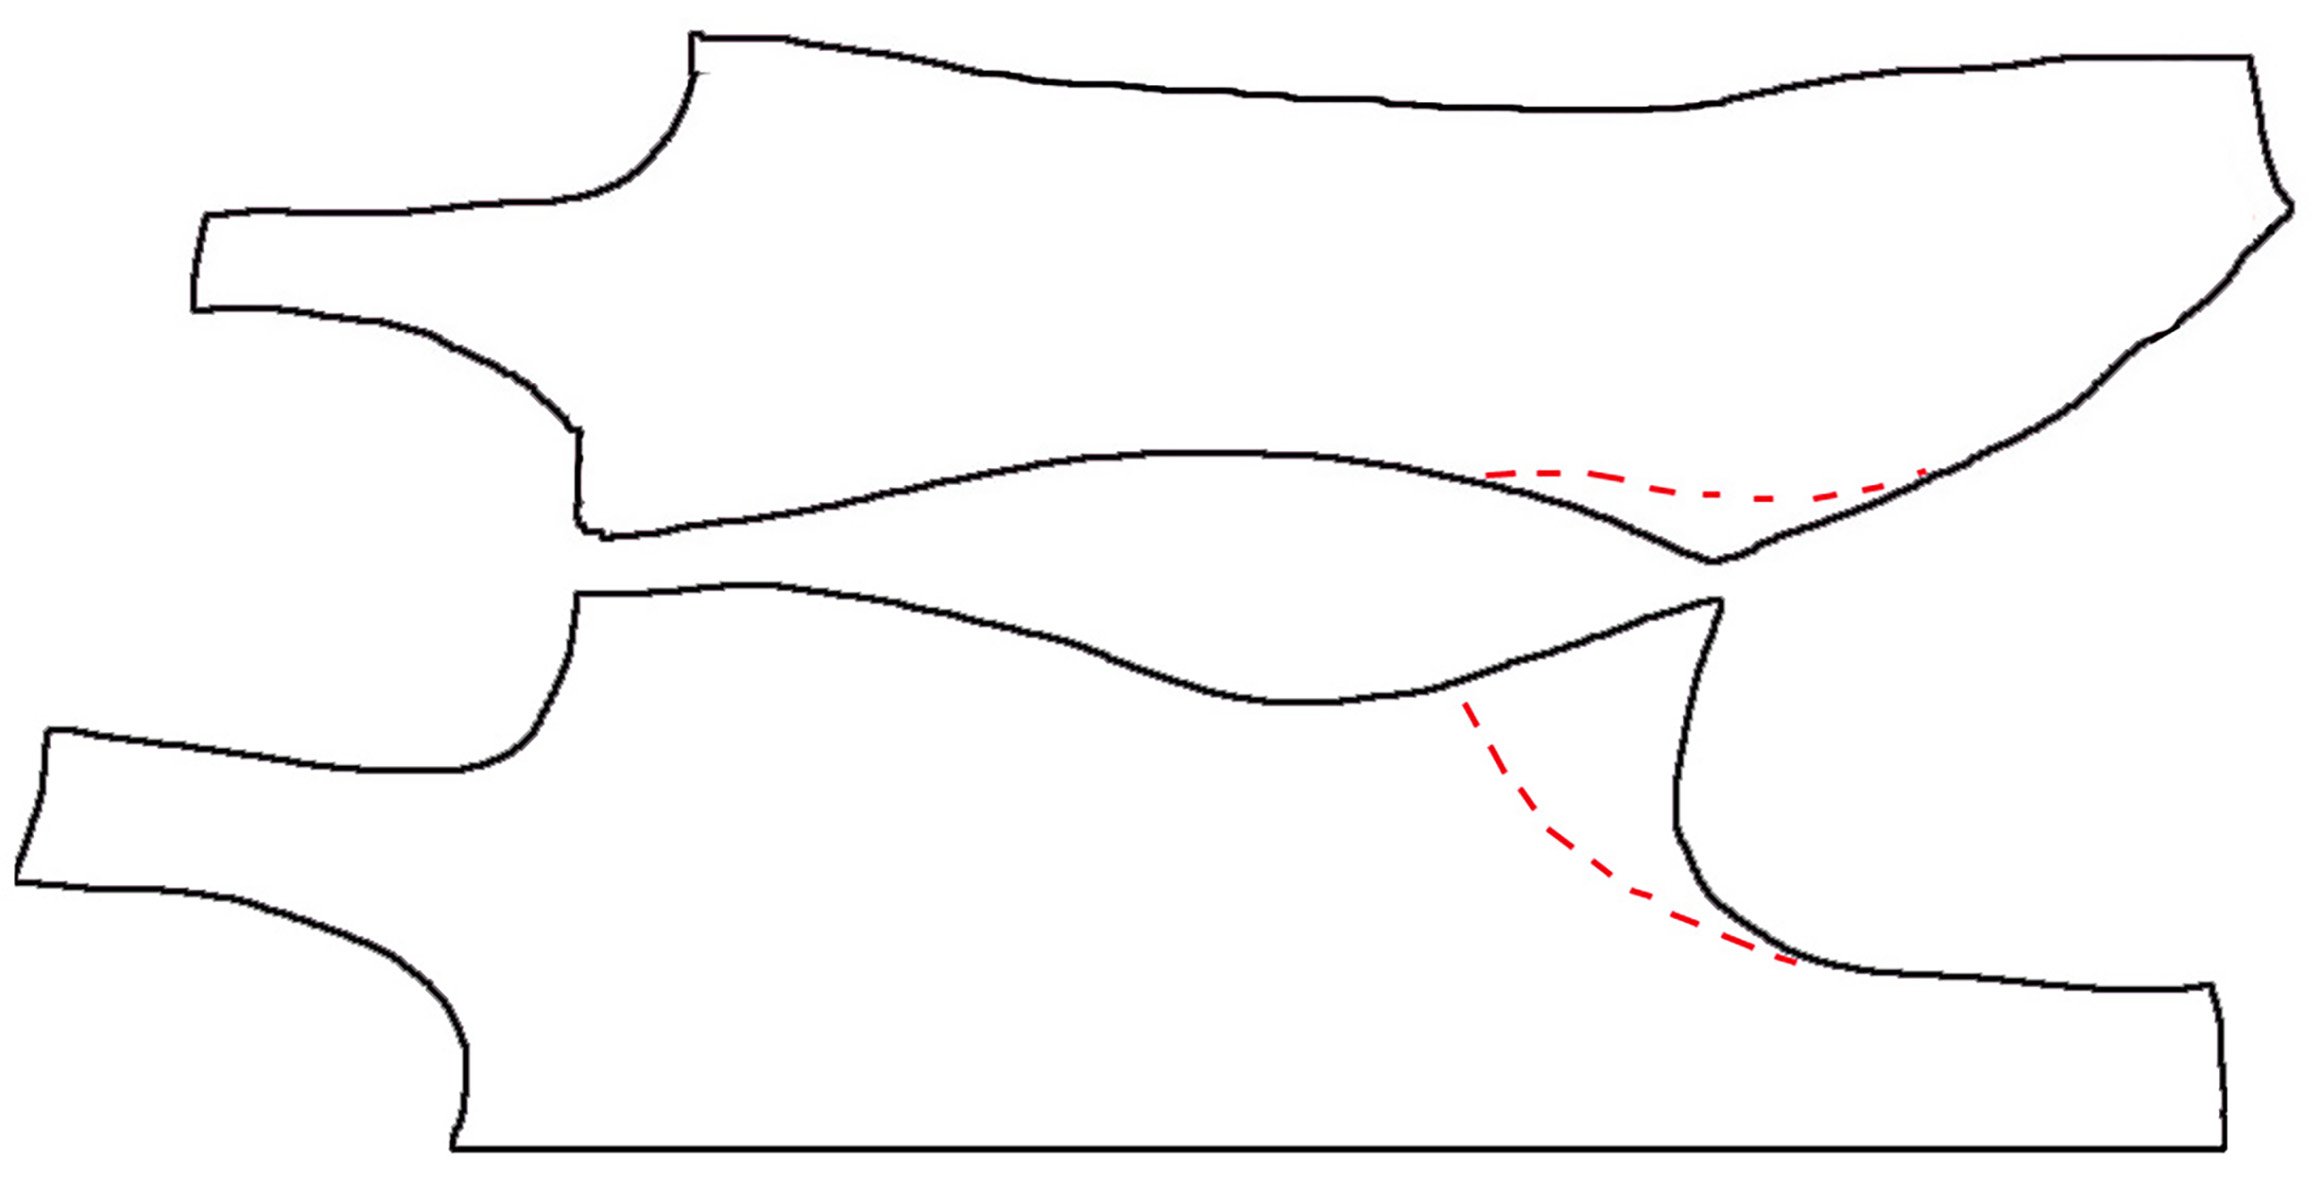 A hand drawn diagram showing how to alter a pattern for a higher leg opening.